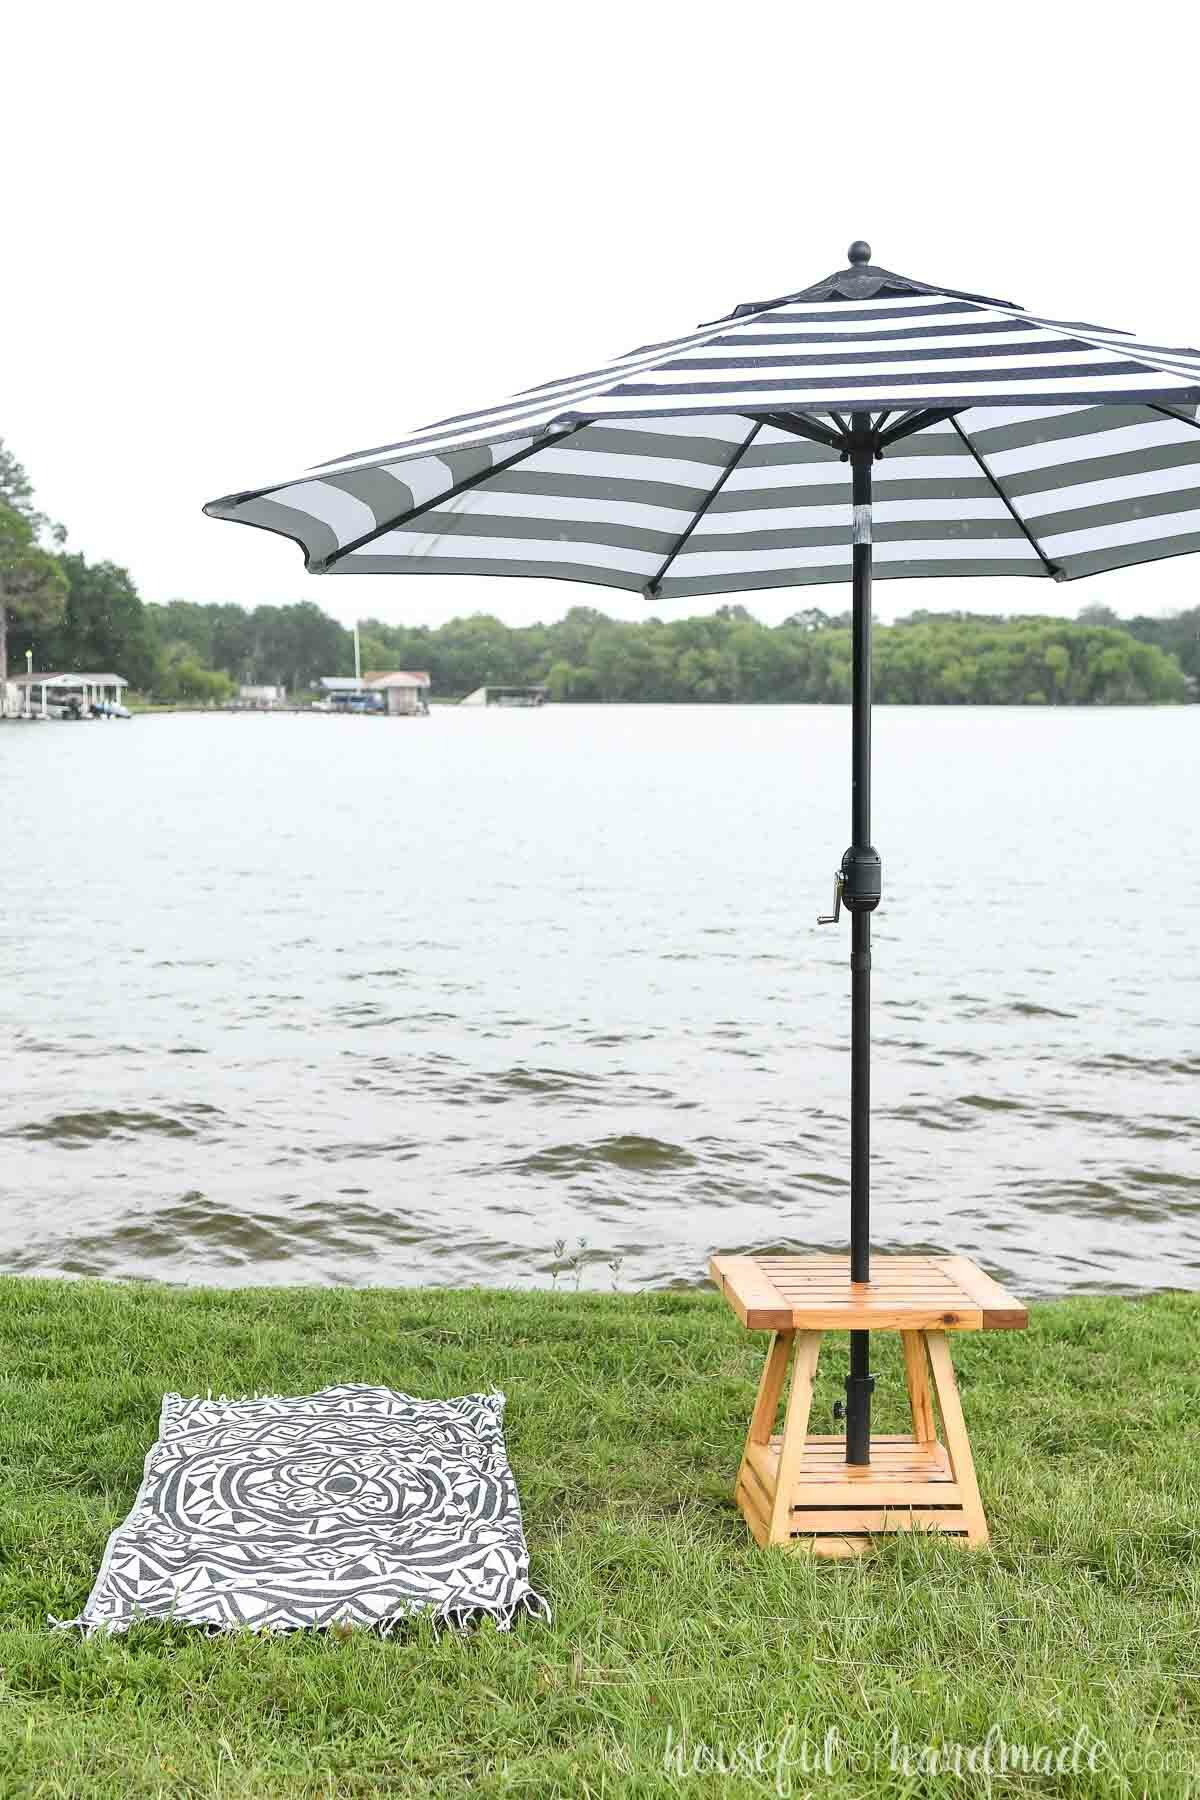 Small patio table with umbrella hole set up next to a beach towel by a lake.